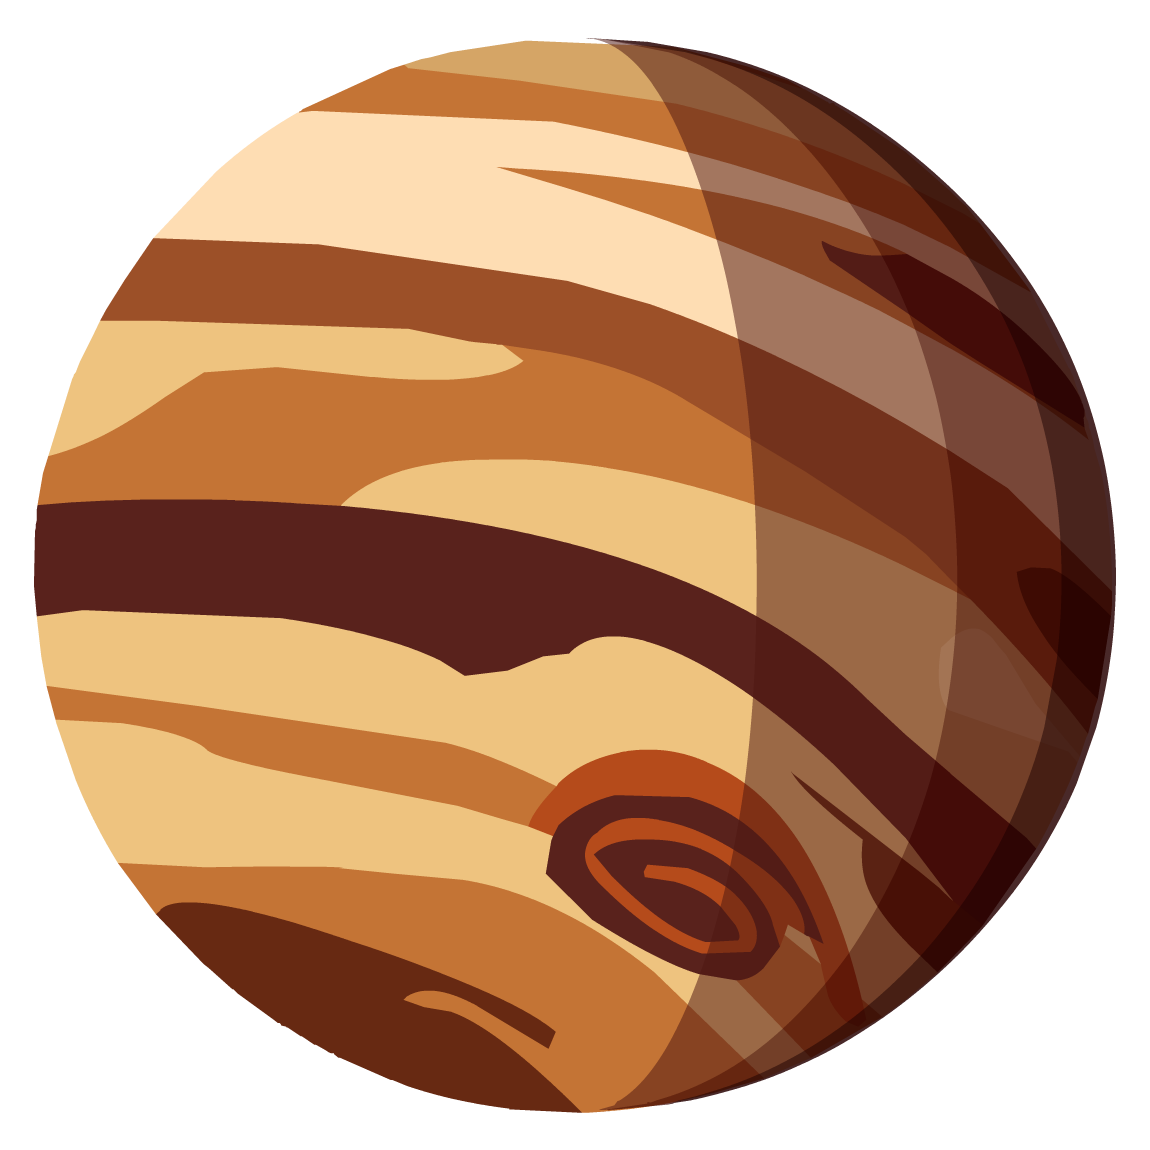 jupiter clip art planet png - photo #48